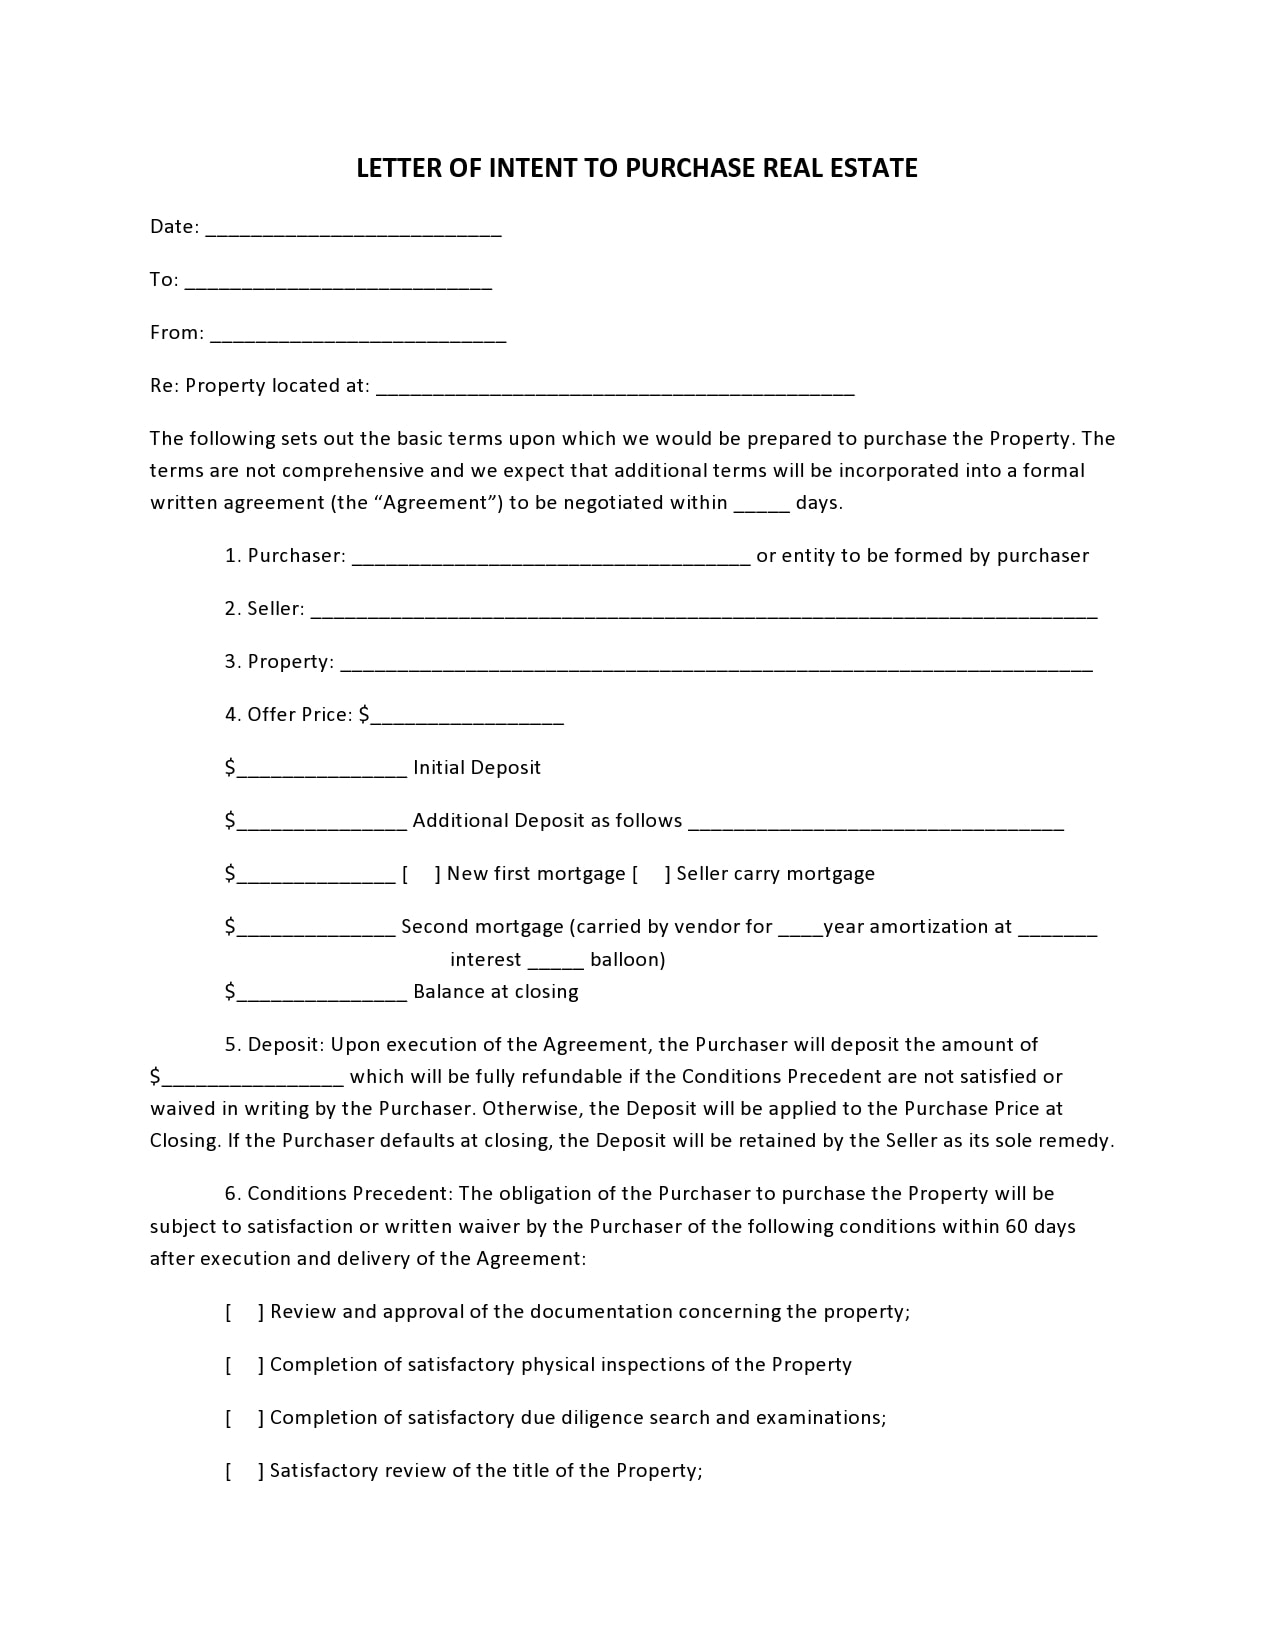 letter of intent to purchase 10